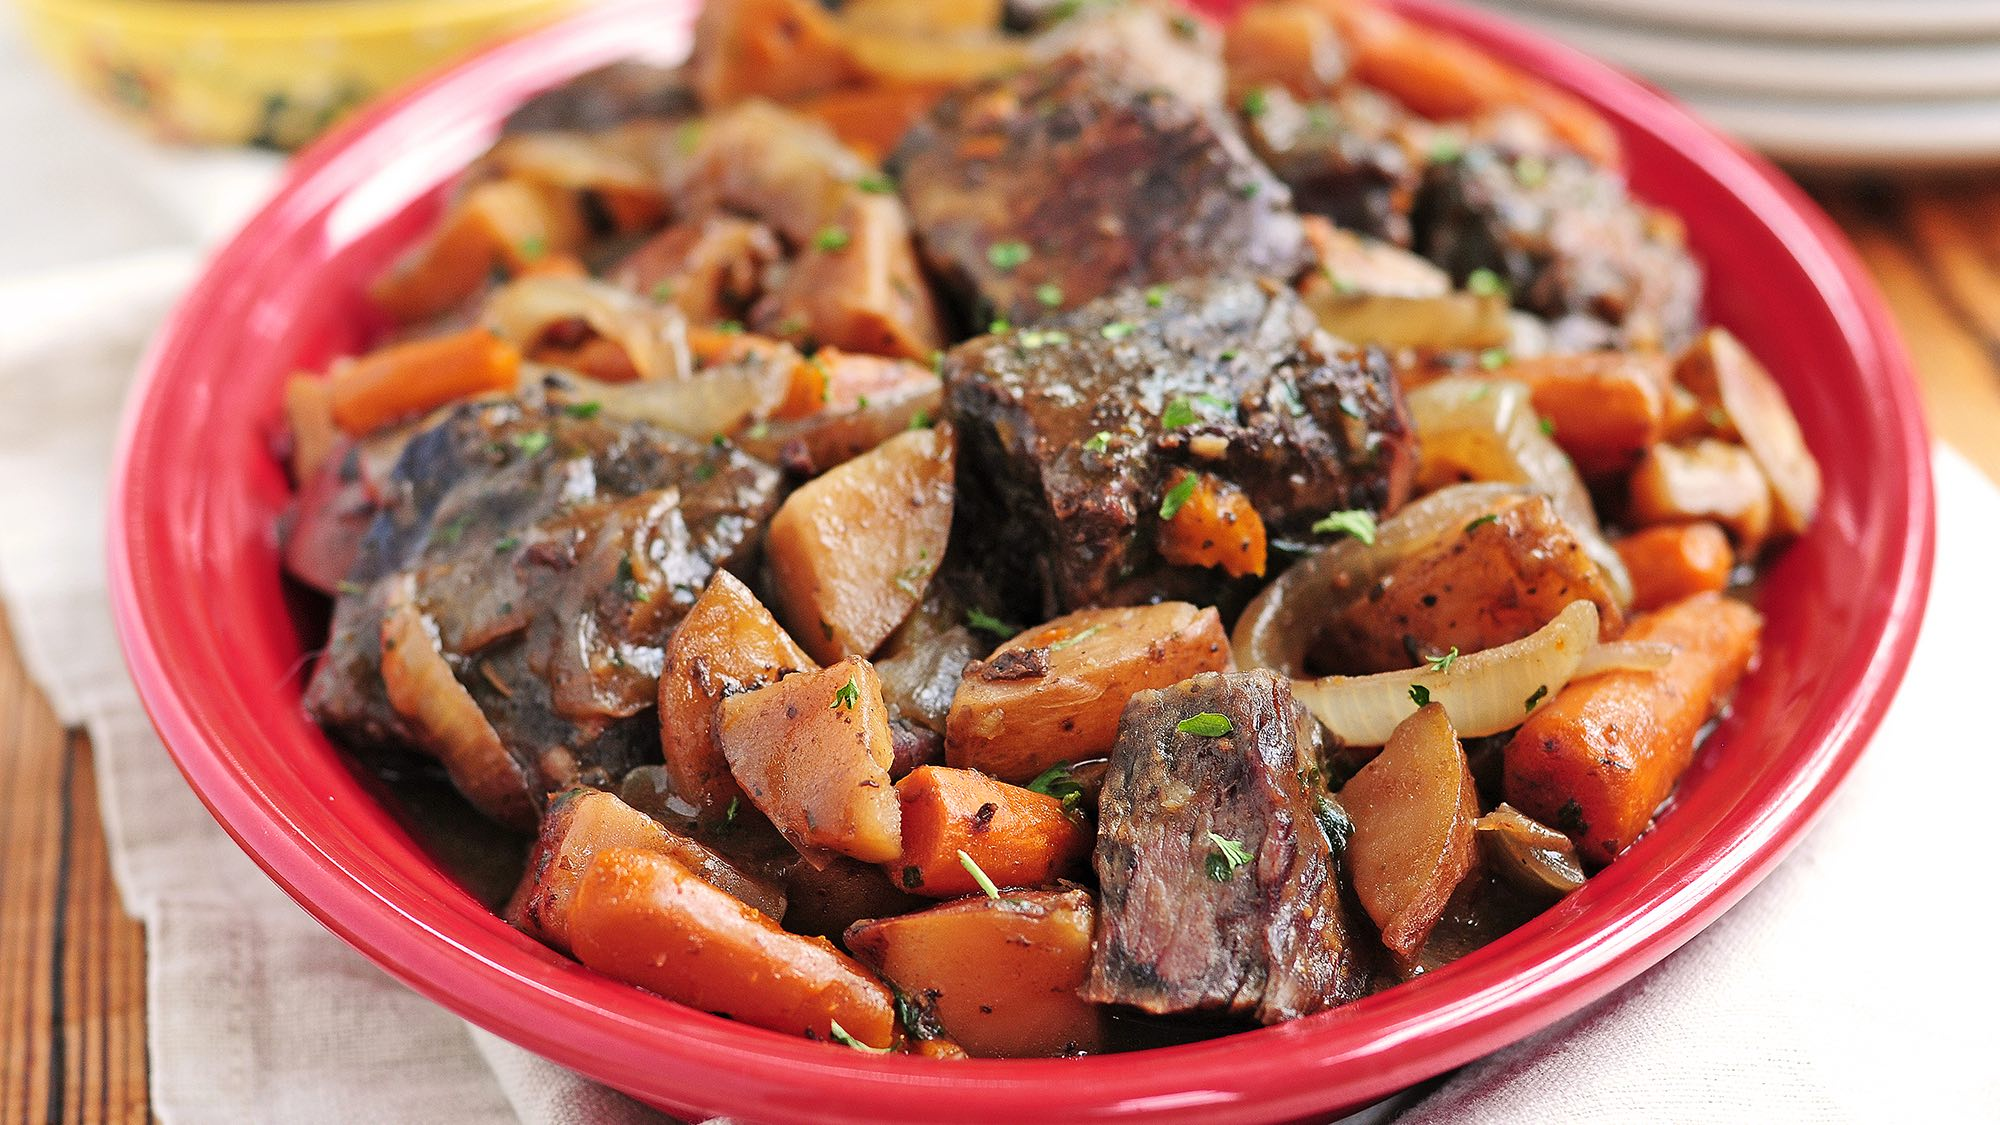 italian-pot-roast-with-red-wine-sauce-she-wears-many-hats.jpg